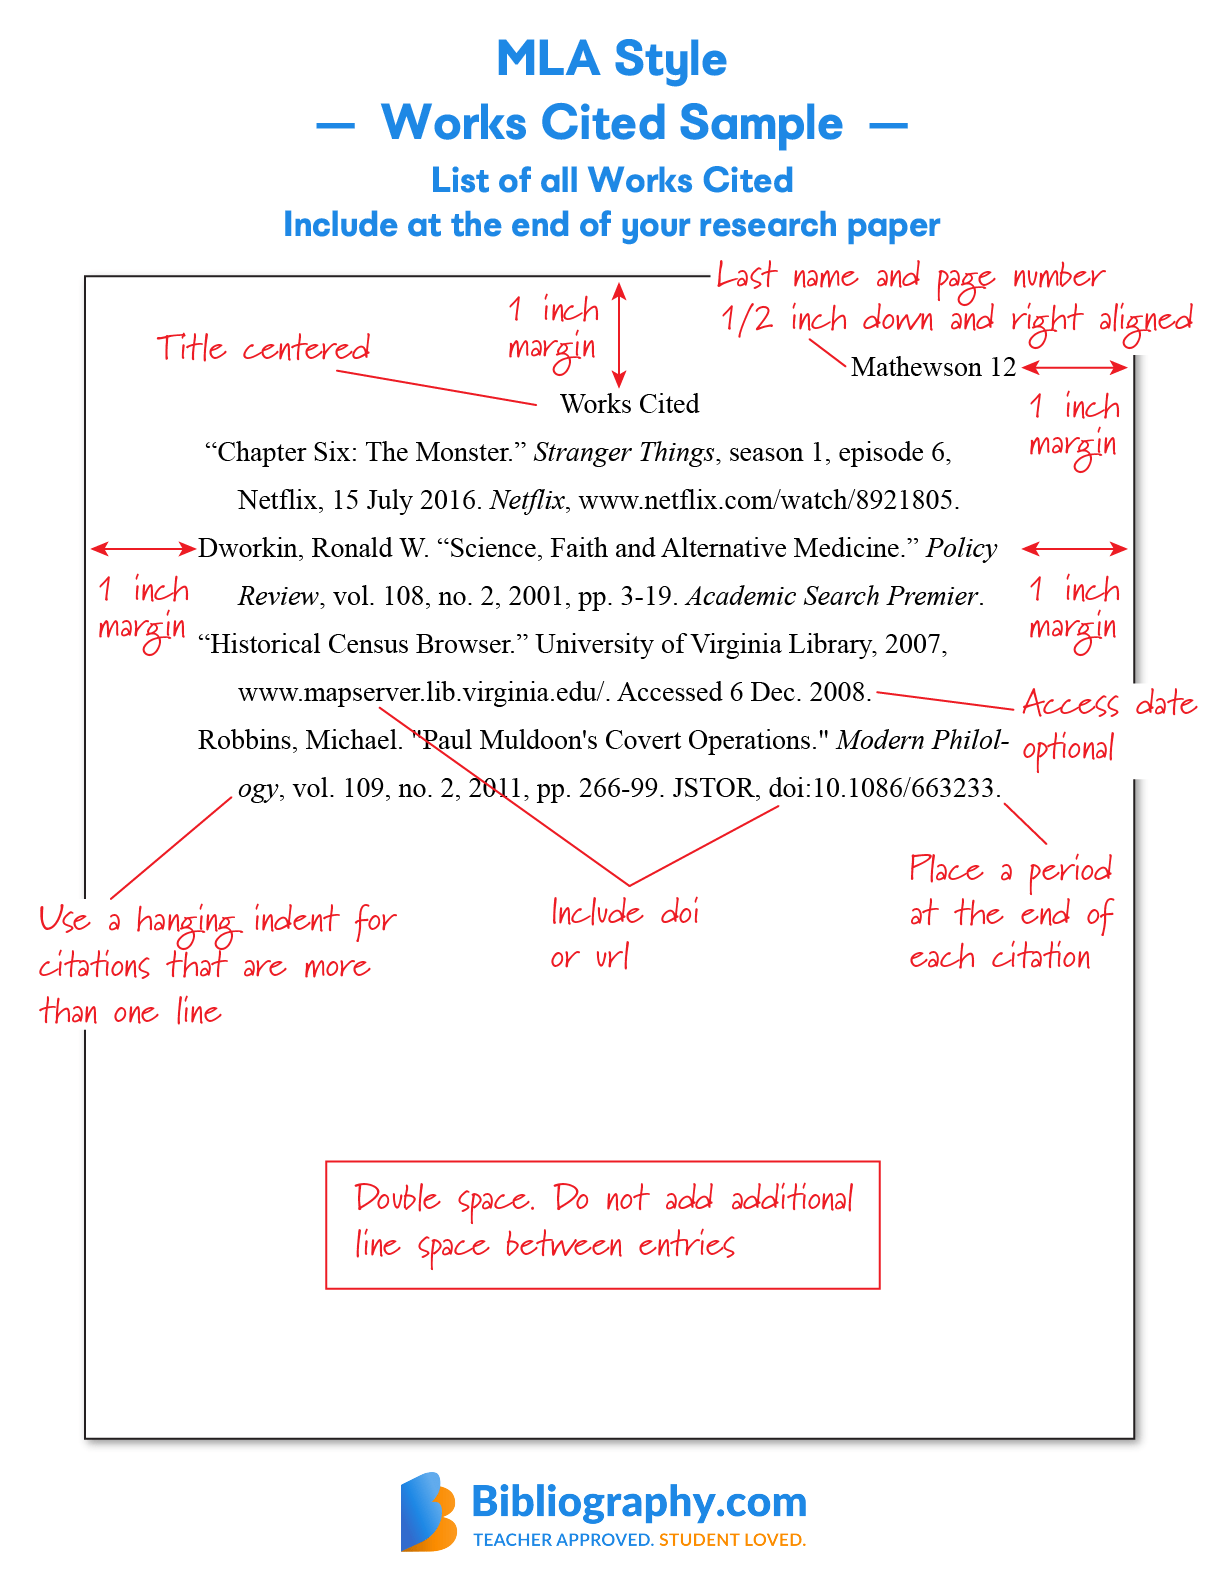 hight resolution of Bibliography Examples for Students   Bibliography.com